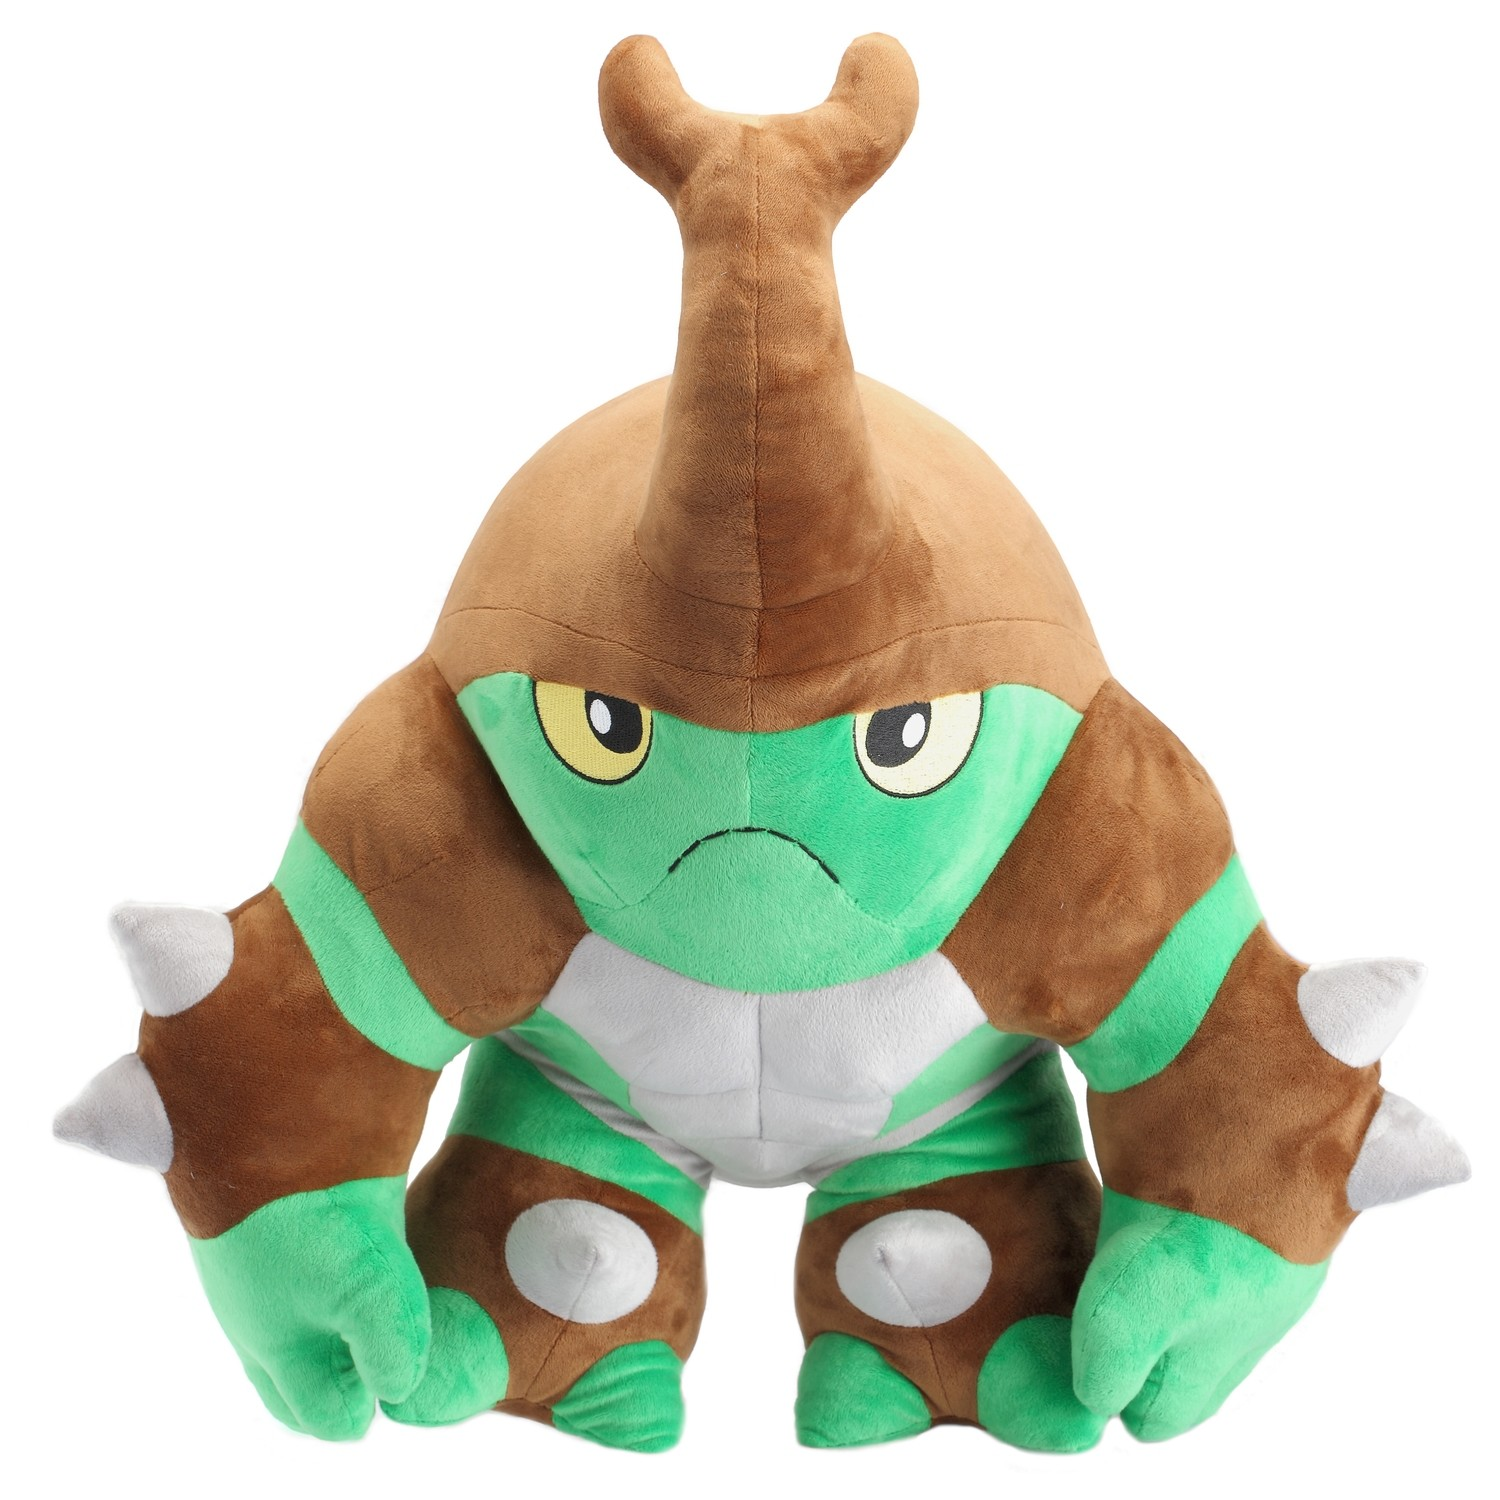 Rivals of Aether Kragg Plush and Pin with DLC